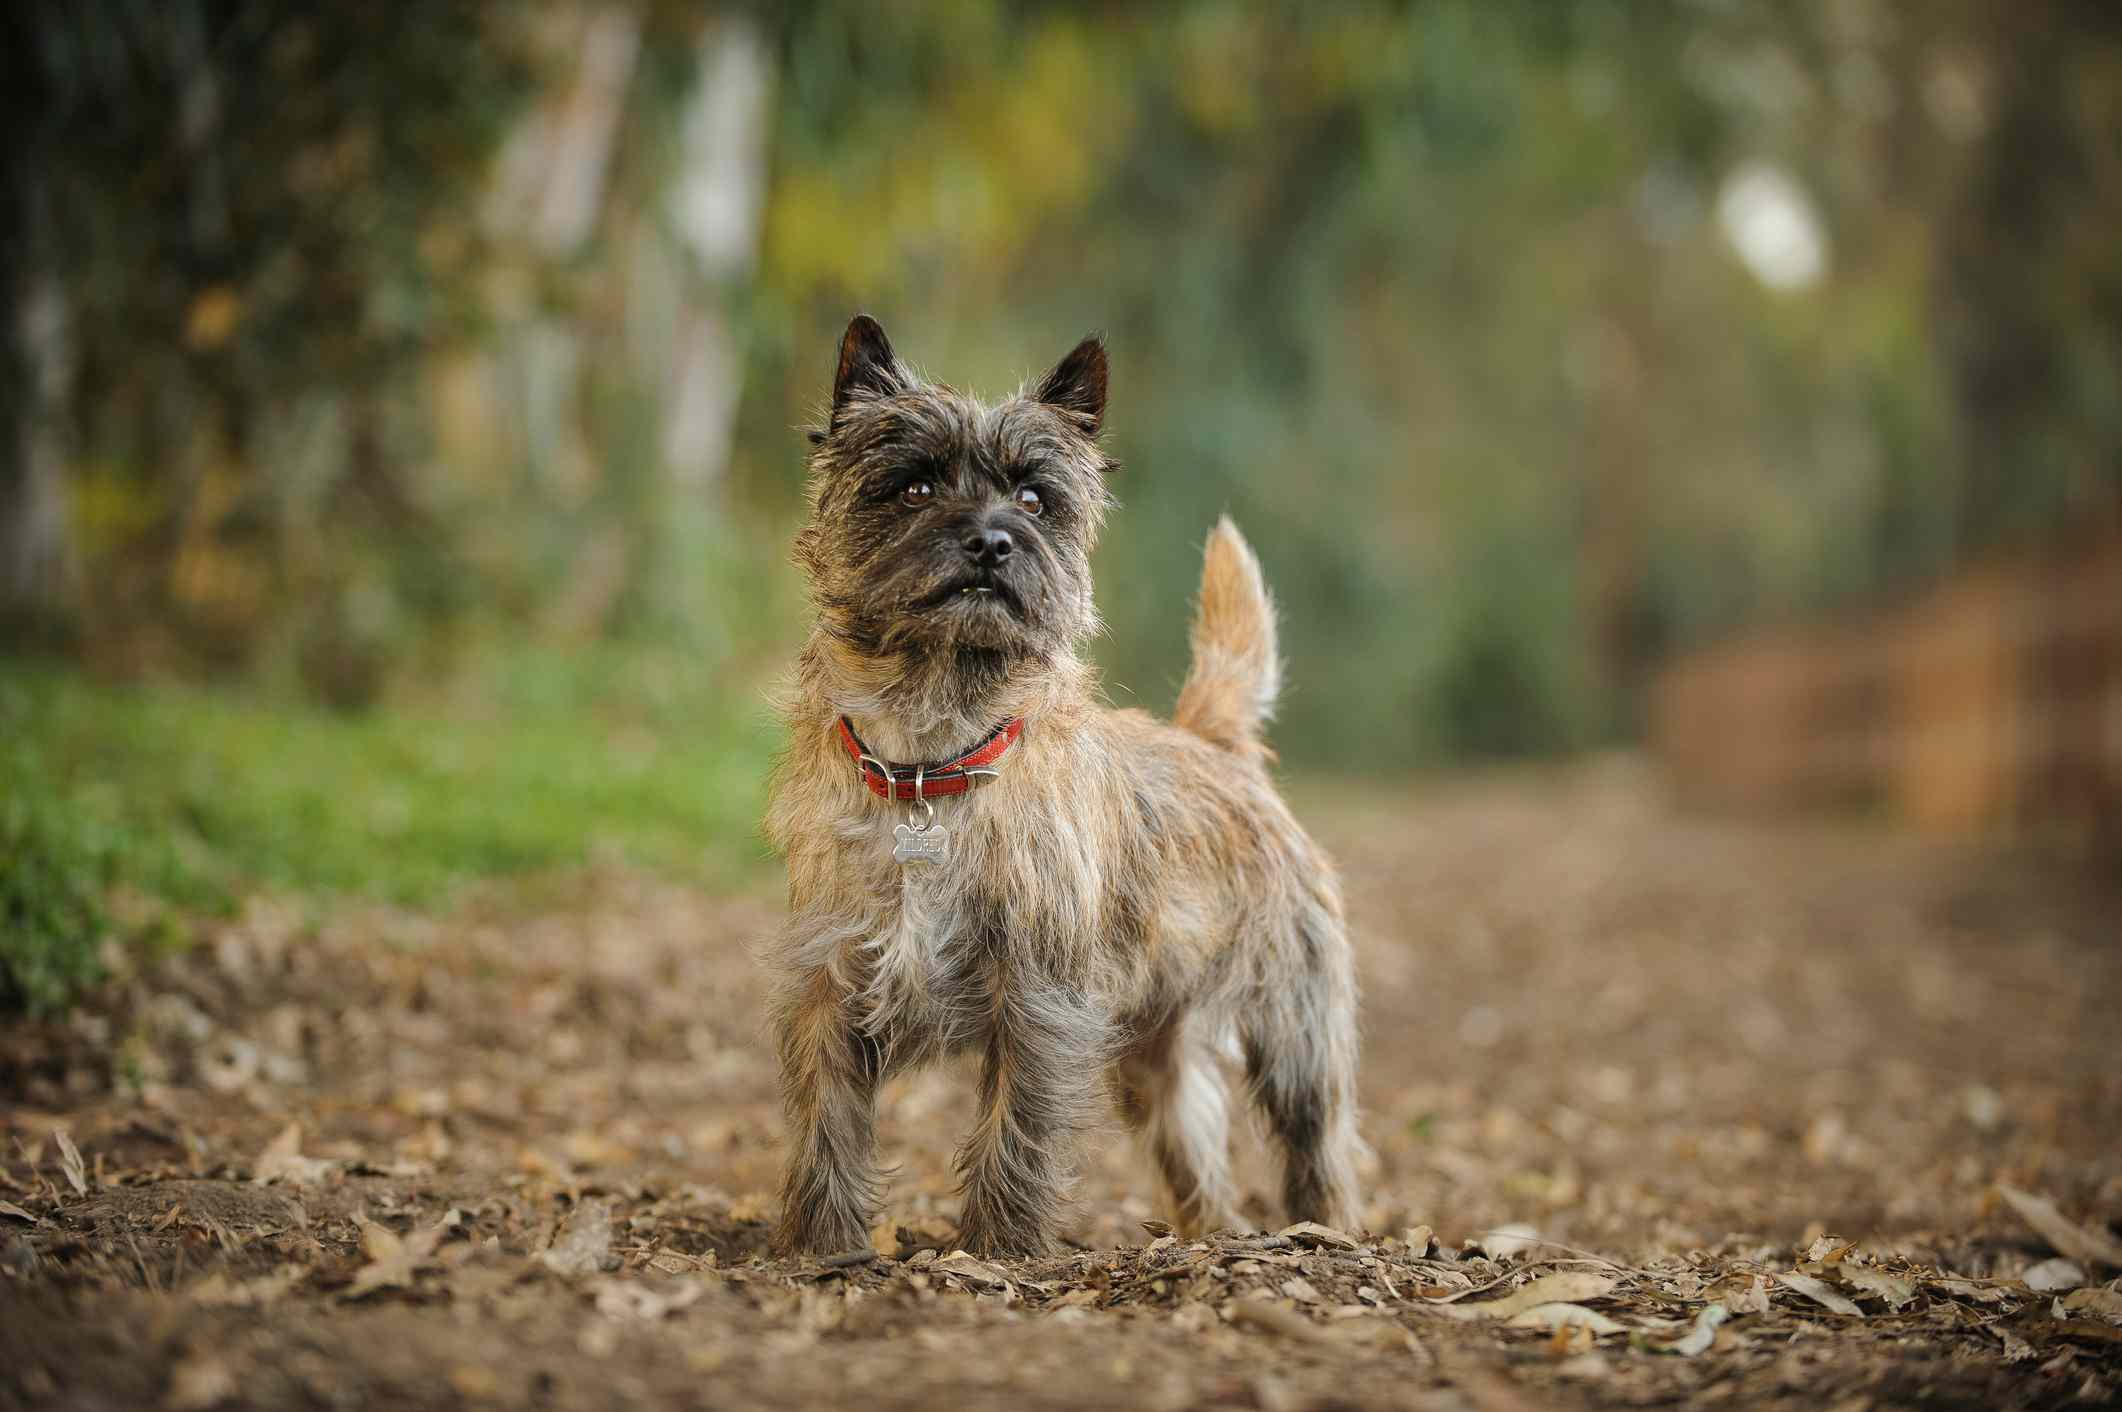 Cairn terrier in a forest